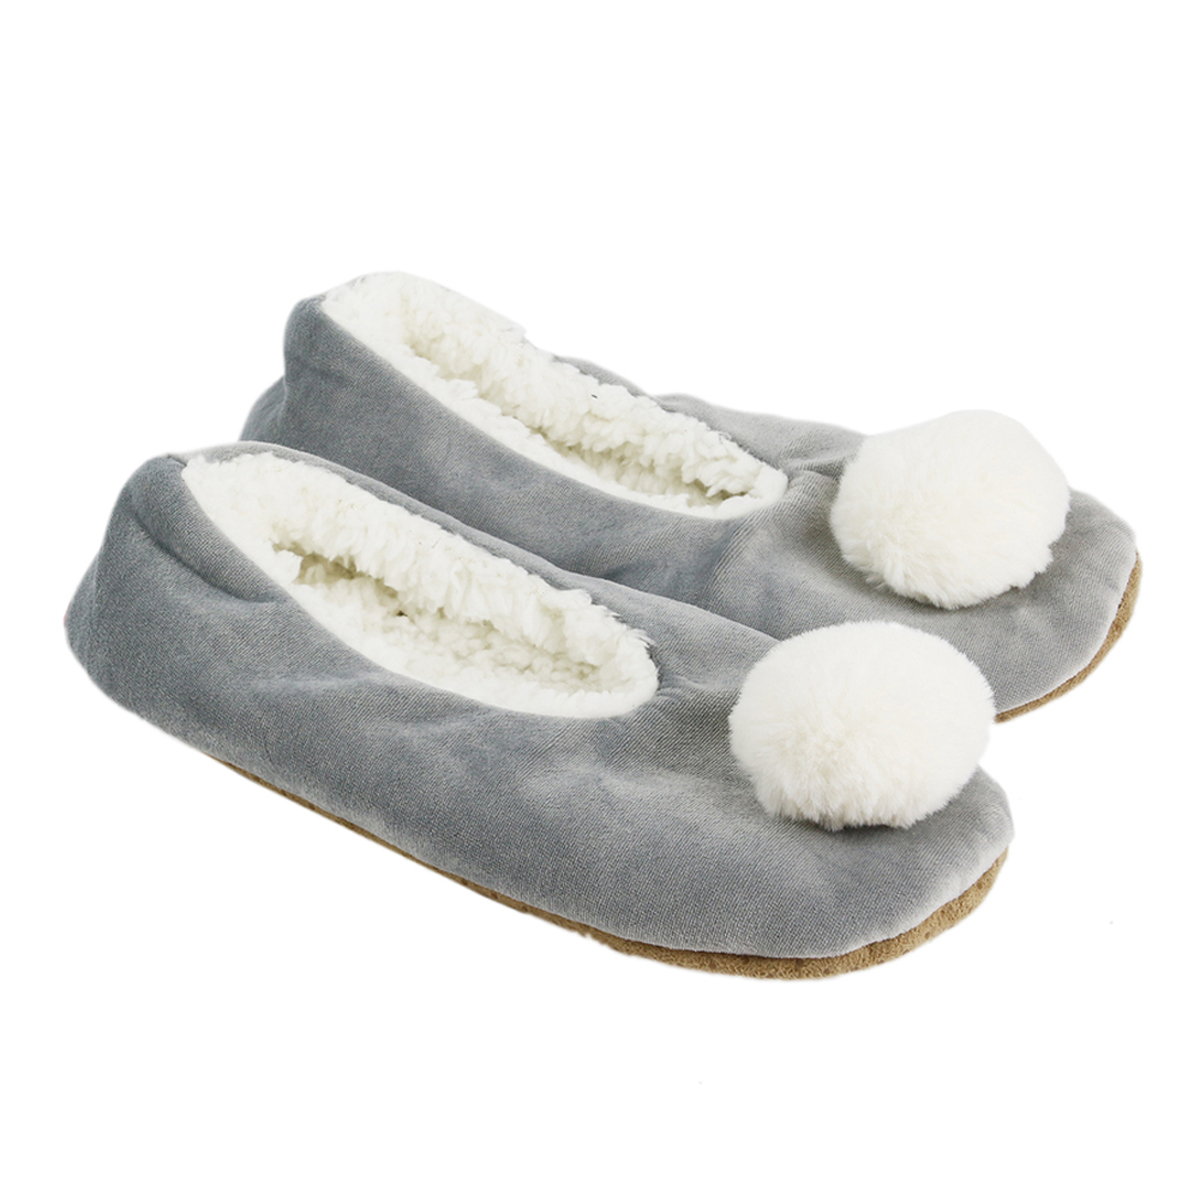 Chausson ballerines \'Sherpa\' gris - taille 36/38 - [A1467]